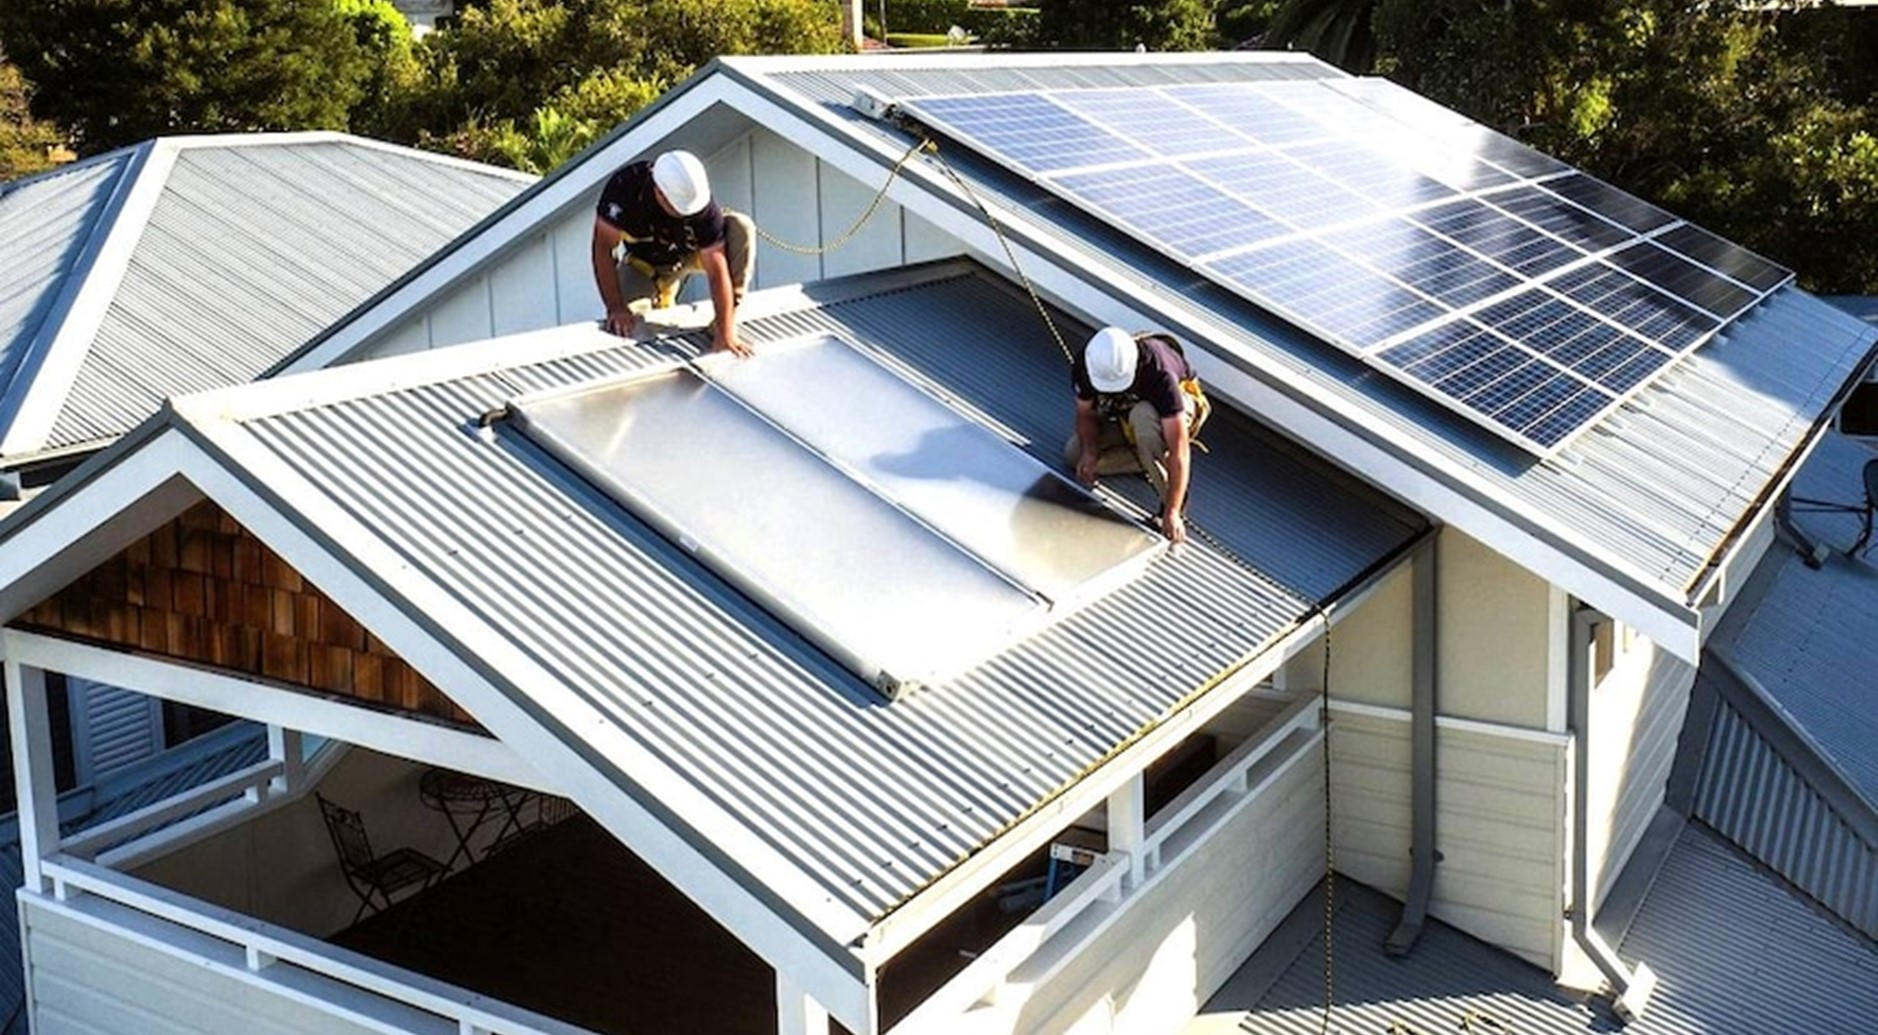 Should I install solar and batteries? - featured image